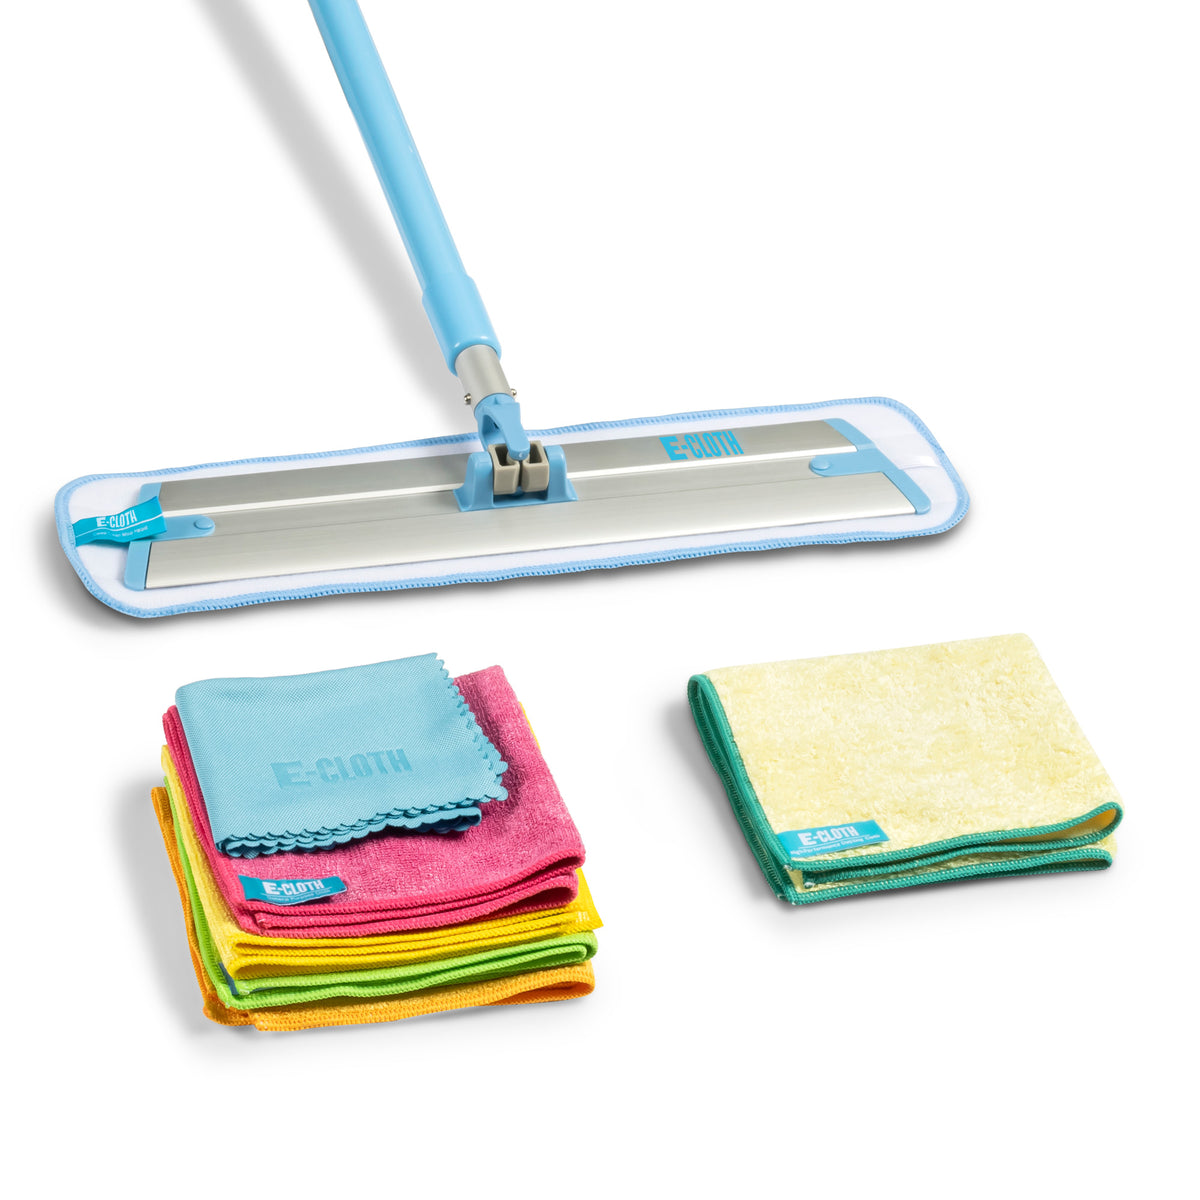 The Baby-Friendly Cleaning Bundle - 7 PC